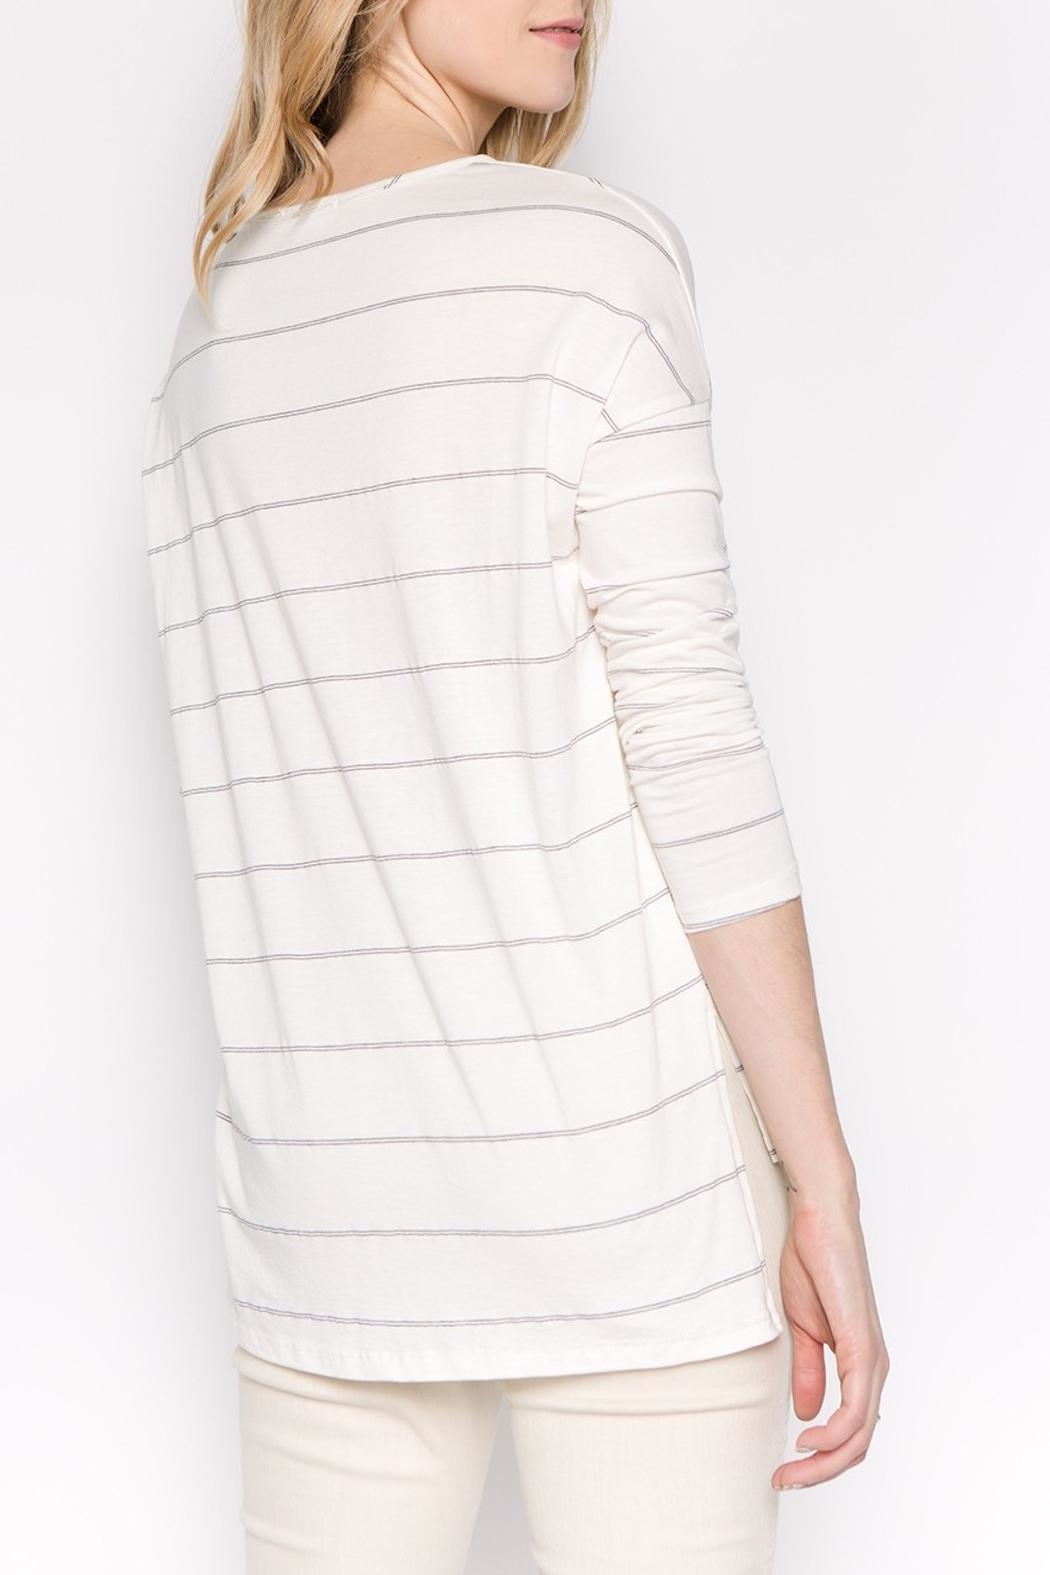 Apricot Lane Striped Casual Long-Sleeve - Side Cropped Image